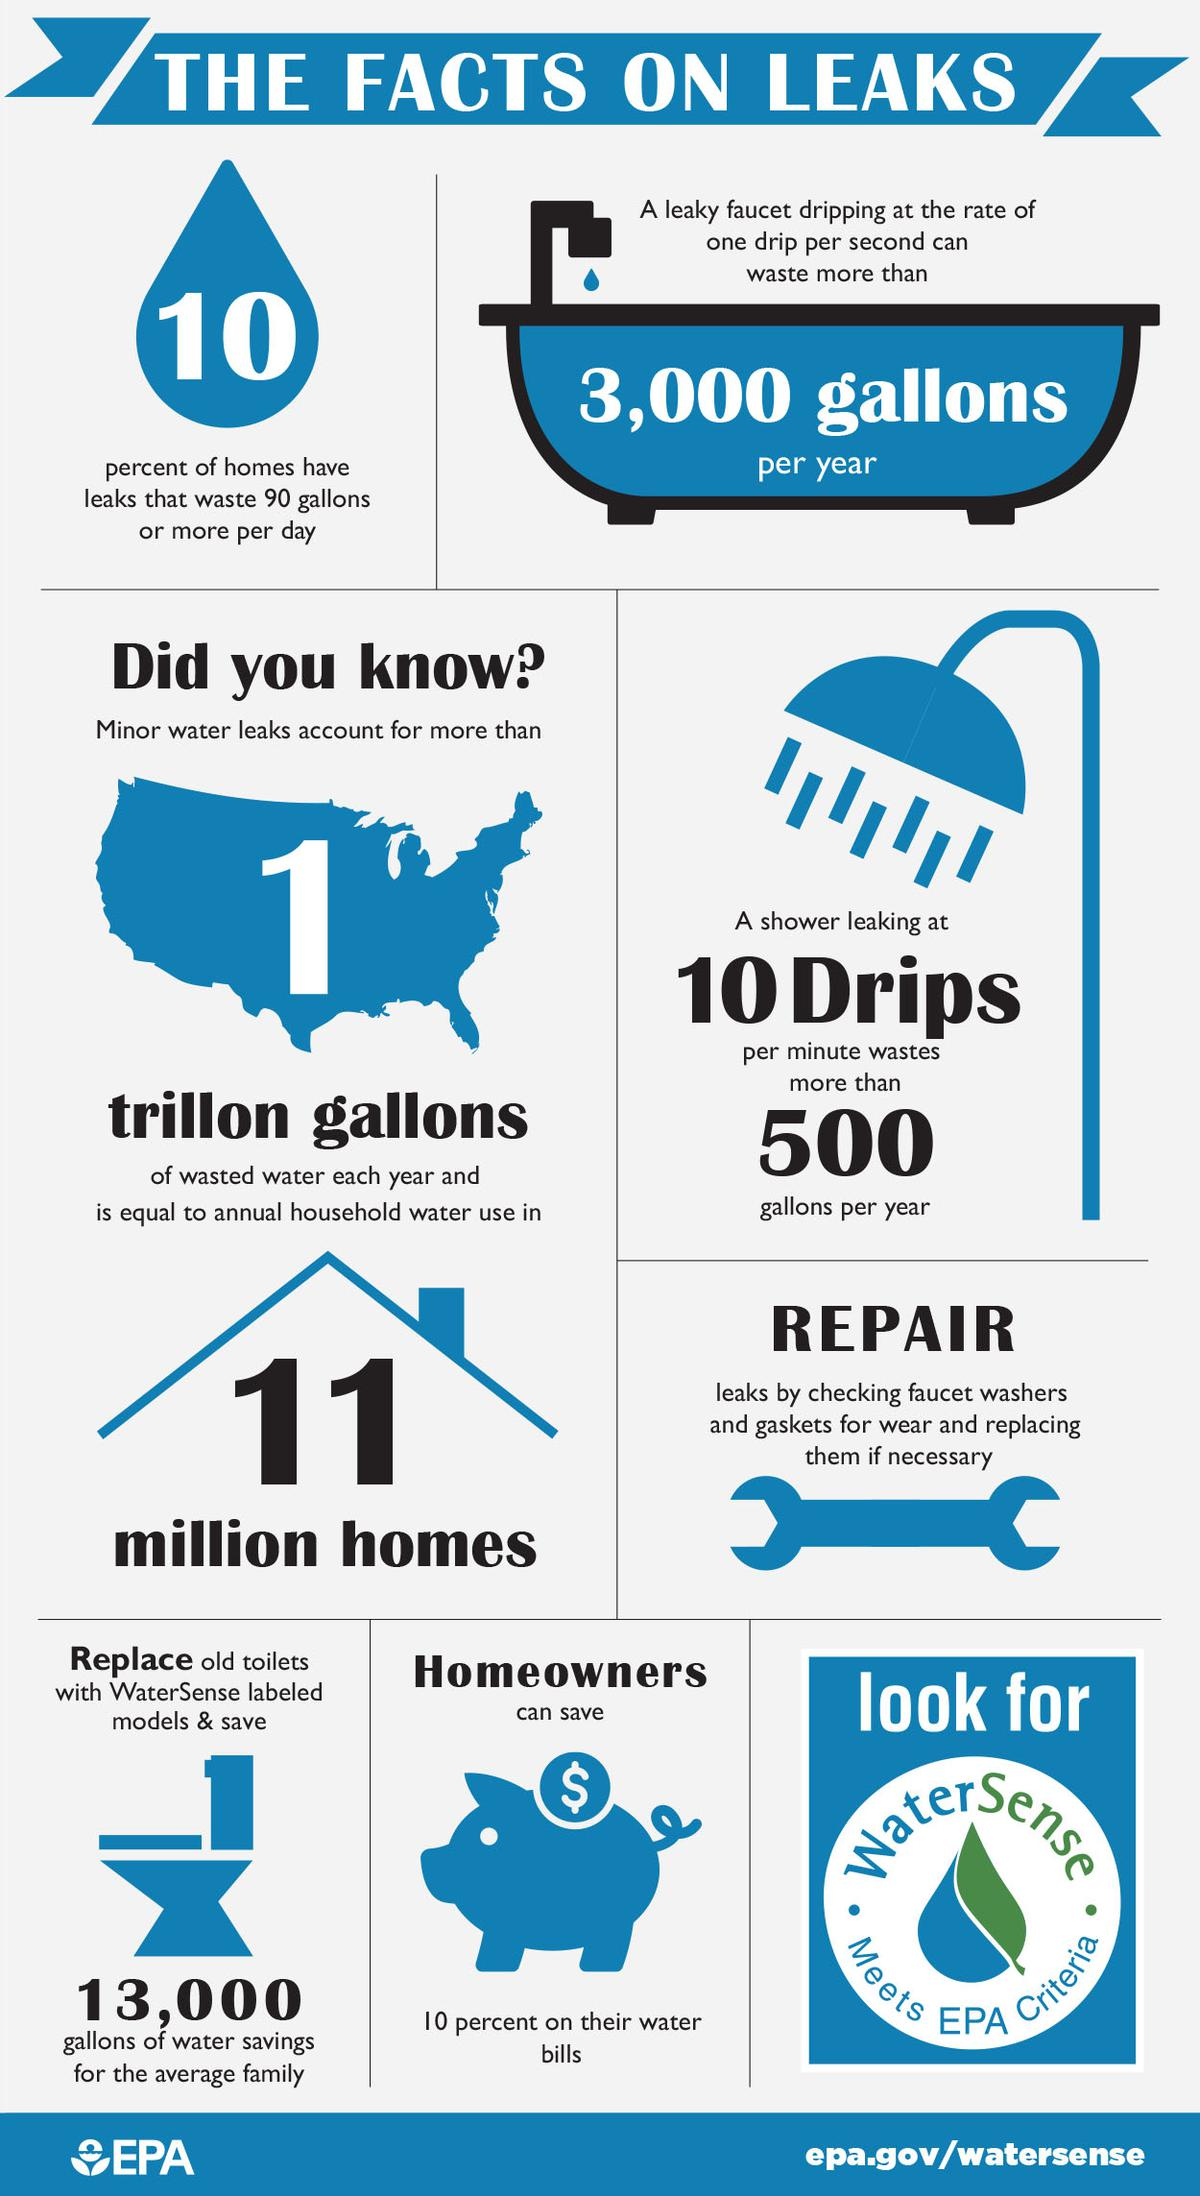 National Fix-a-Leak Week Mar 14 through March 20.